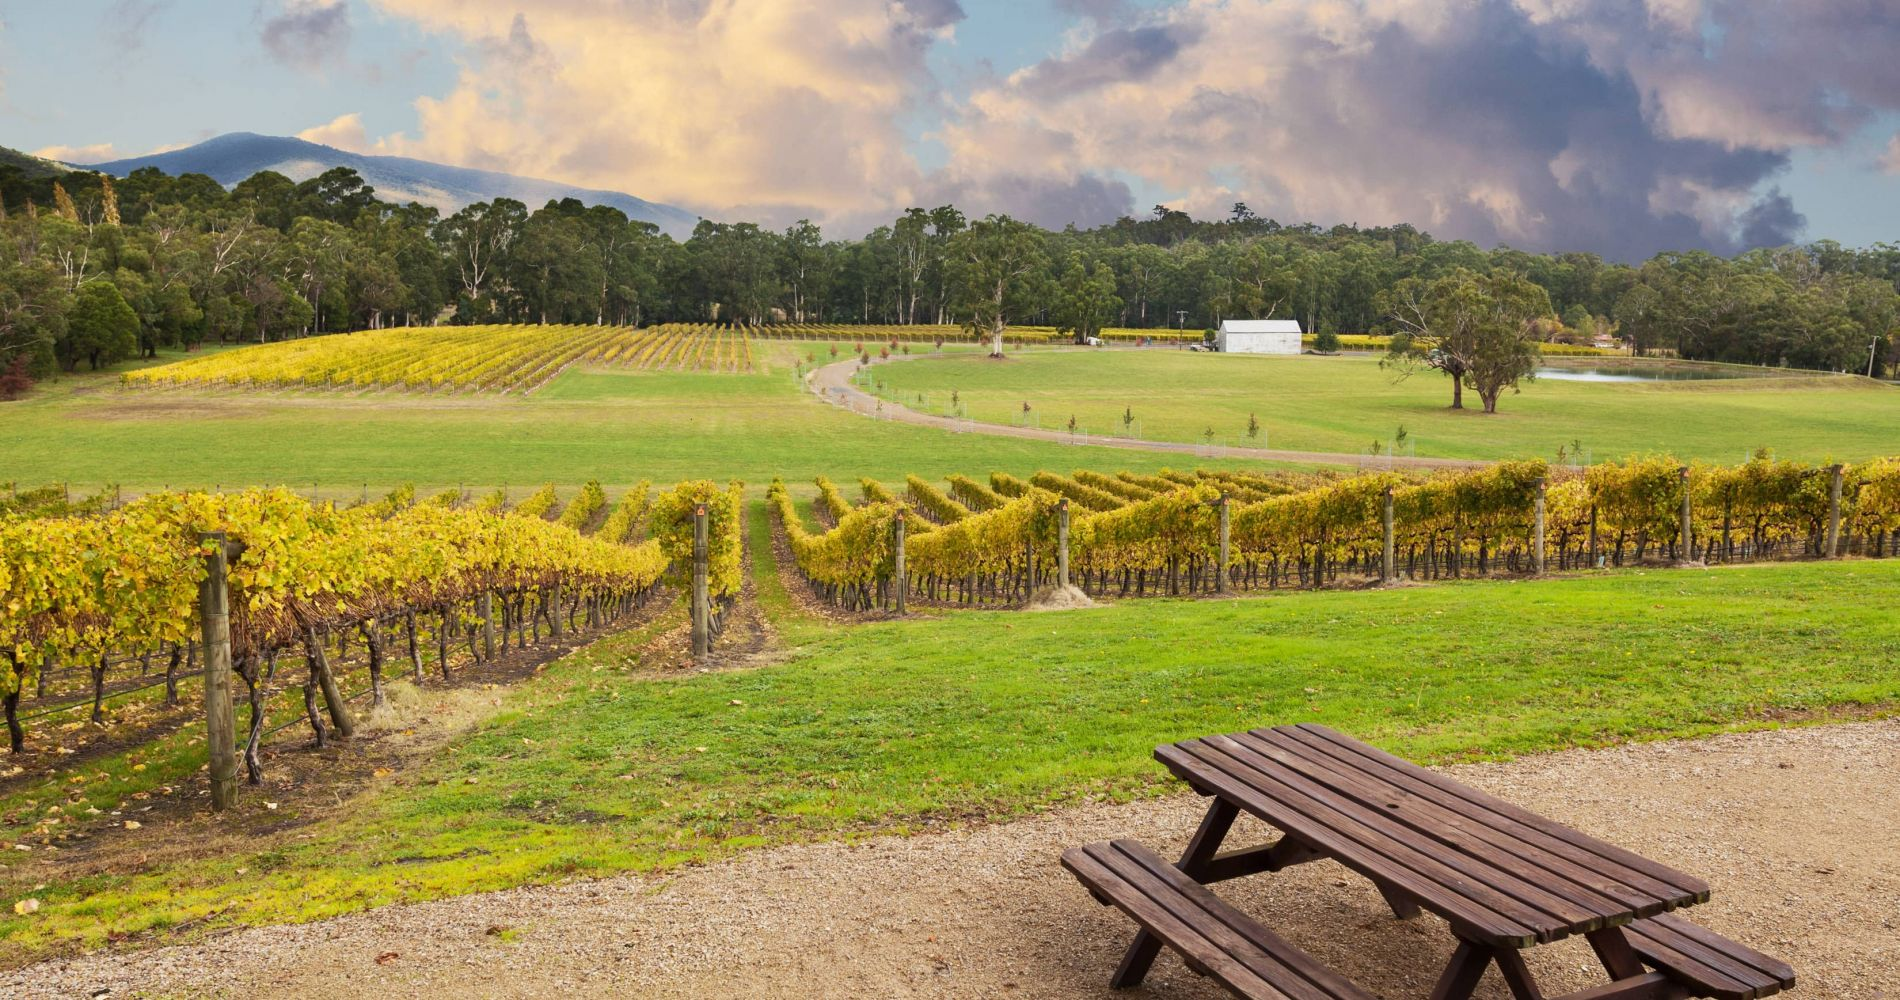 Yarra Valley Cider and Ale Trail in Melbourne